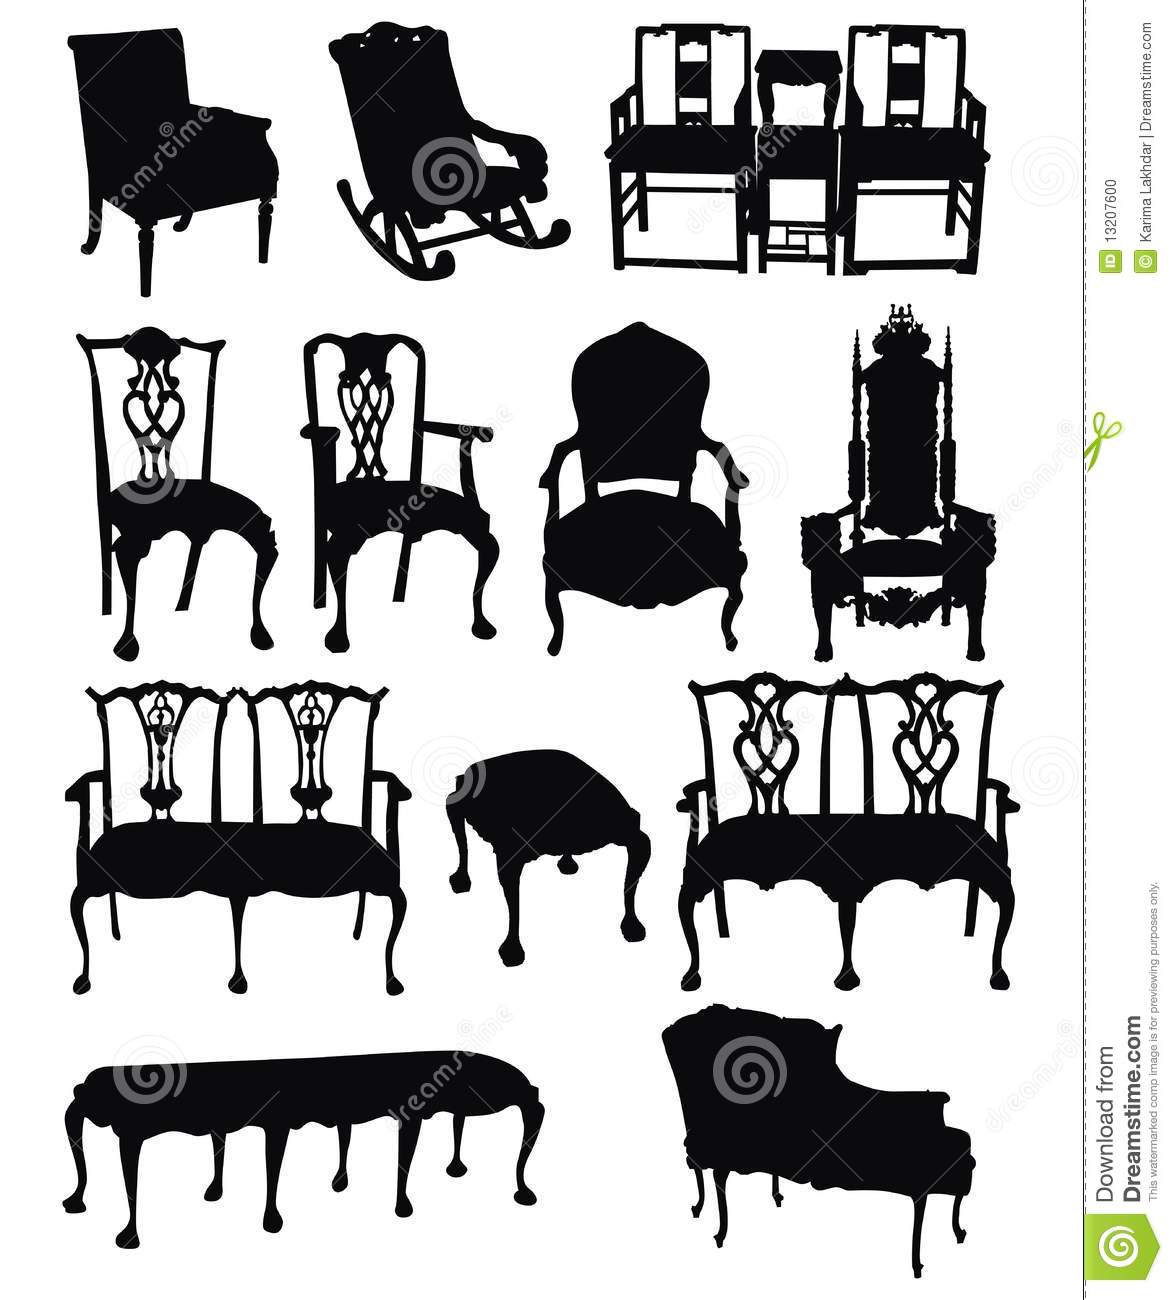 Antique chair silhouette - Antique Chairs Silhouettes